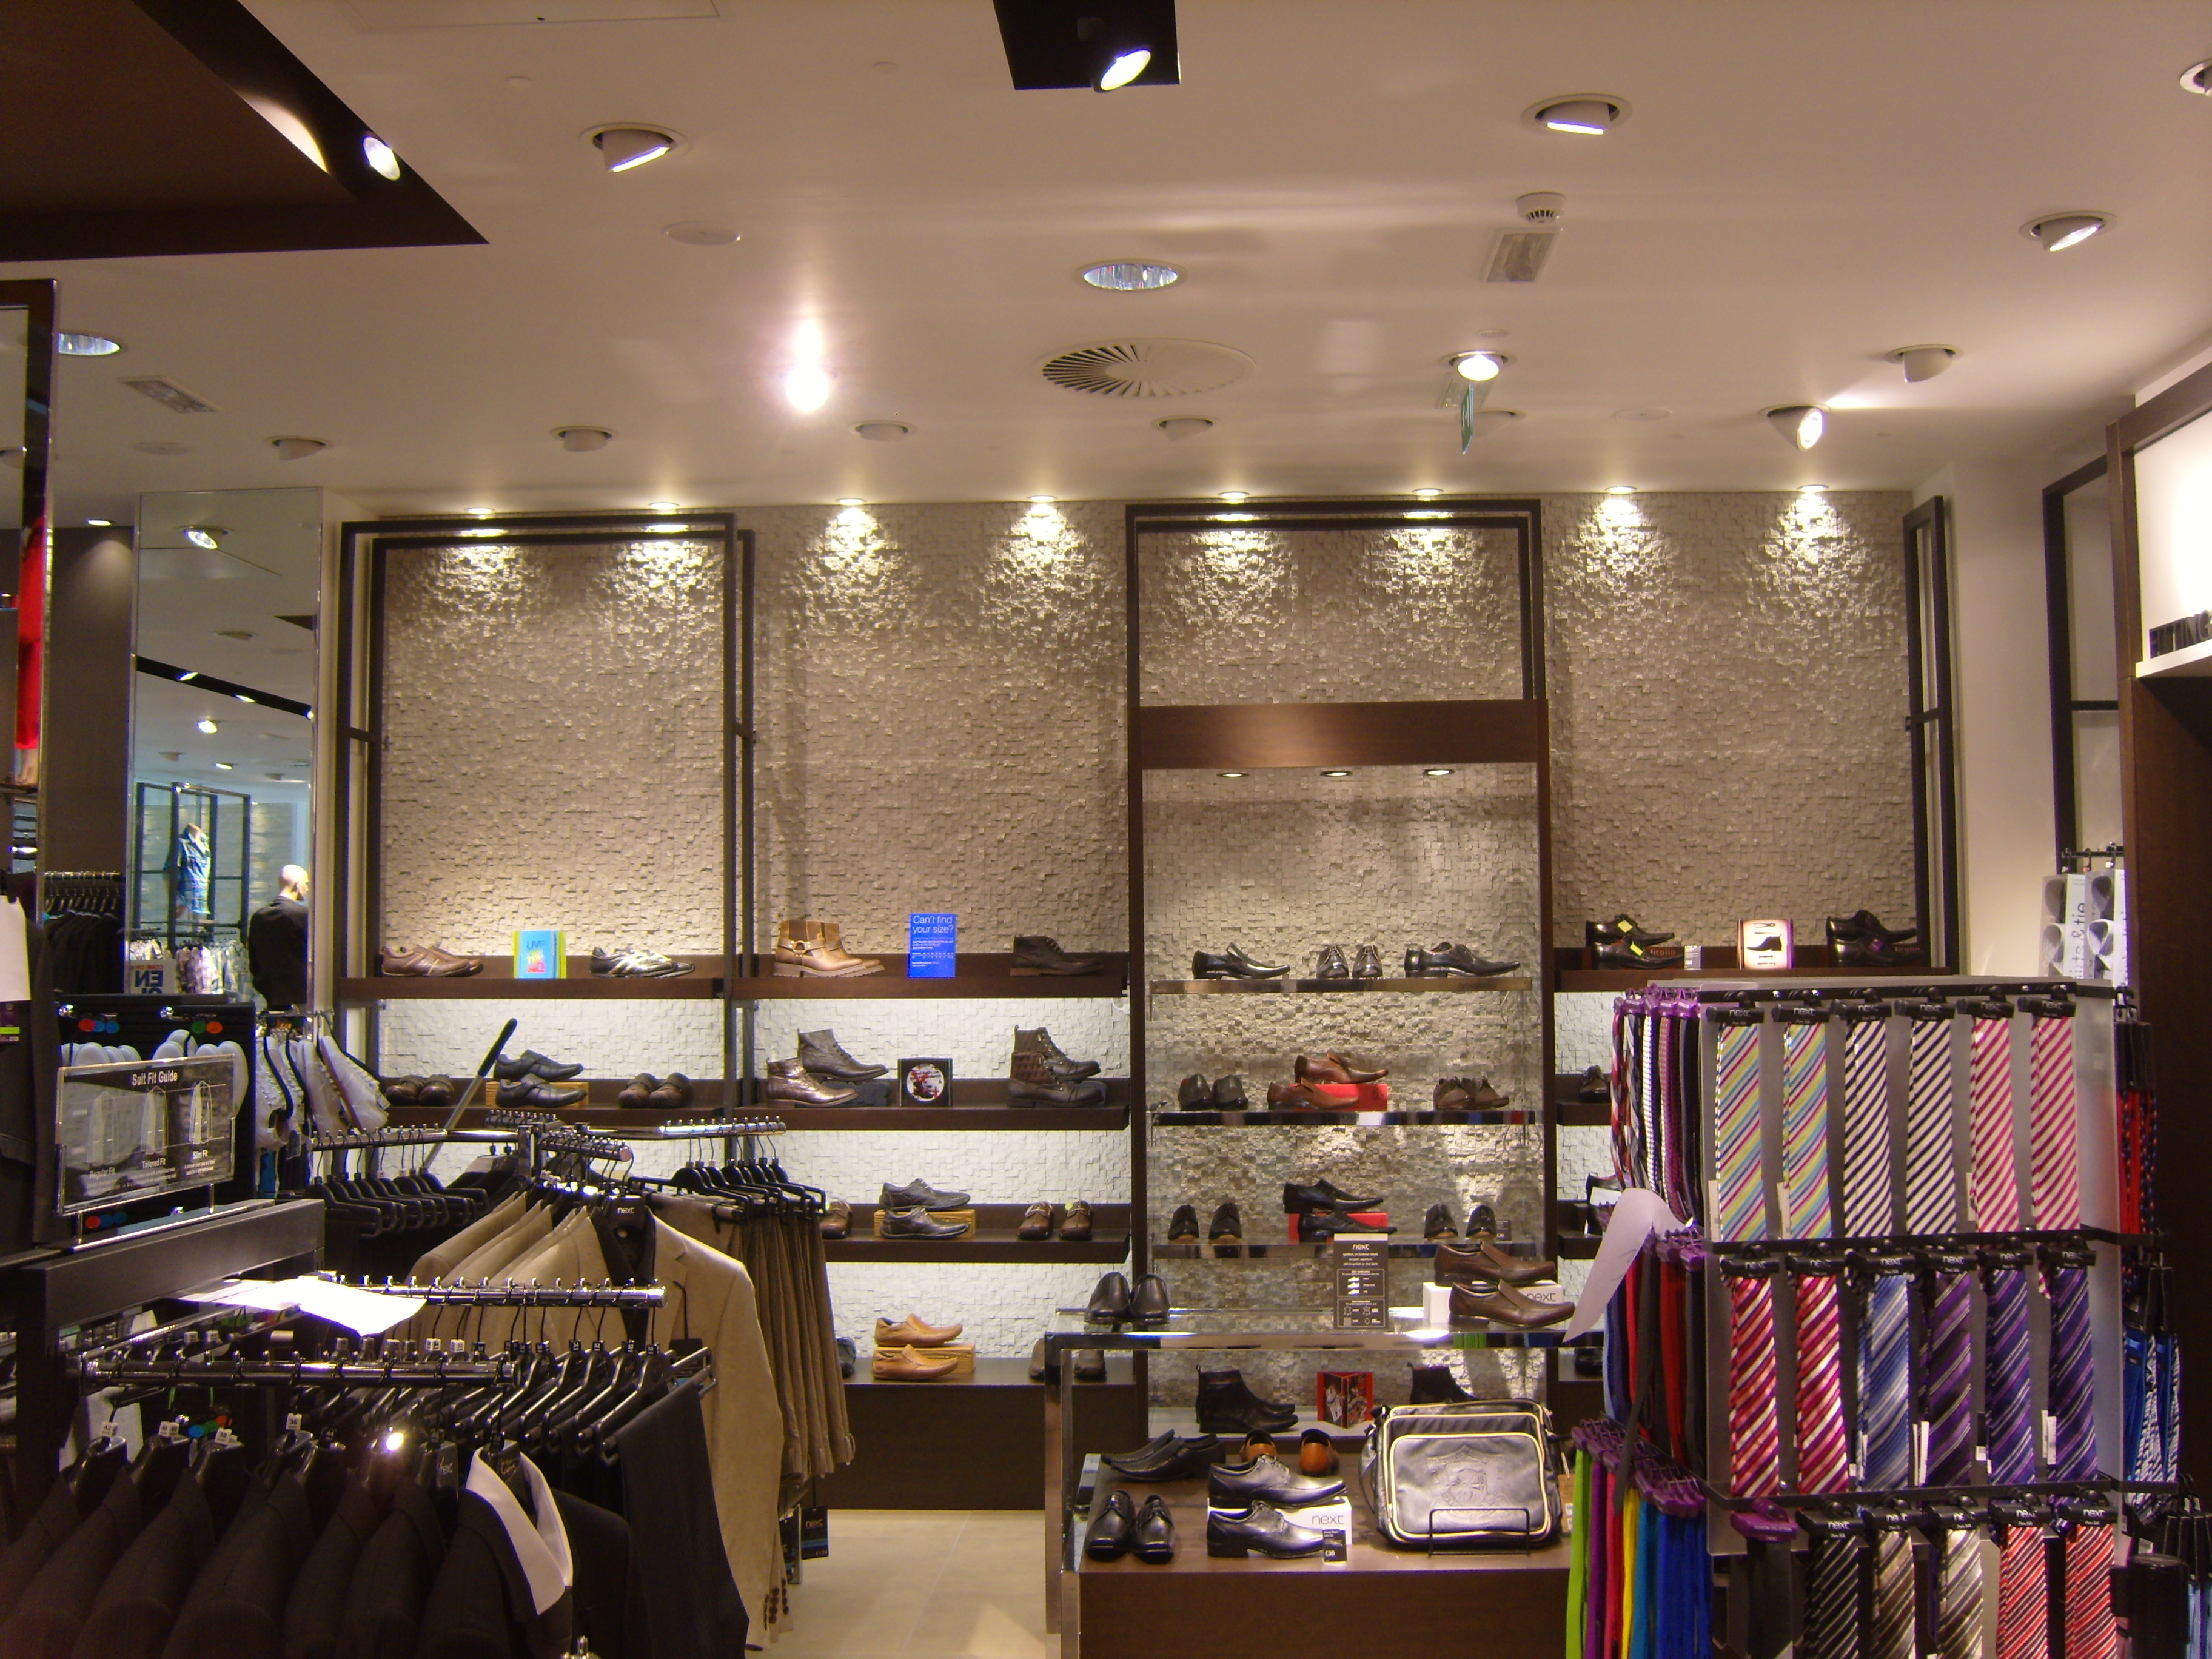 Next shop interiors retail walls contemporary walls white cubic panel dreamwall for Shop designs interior